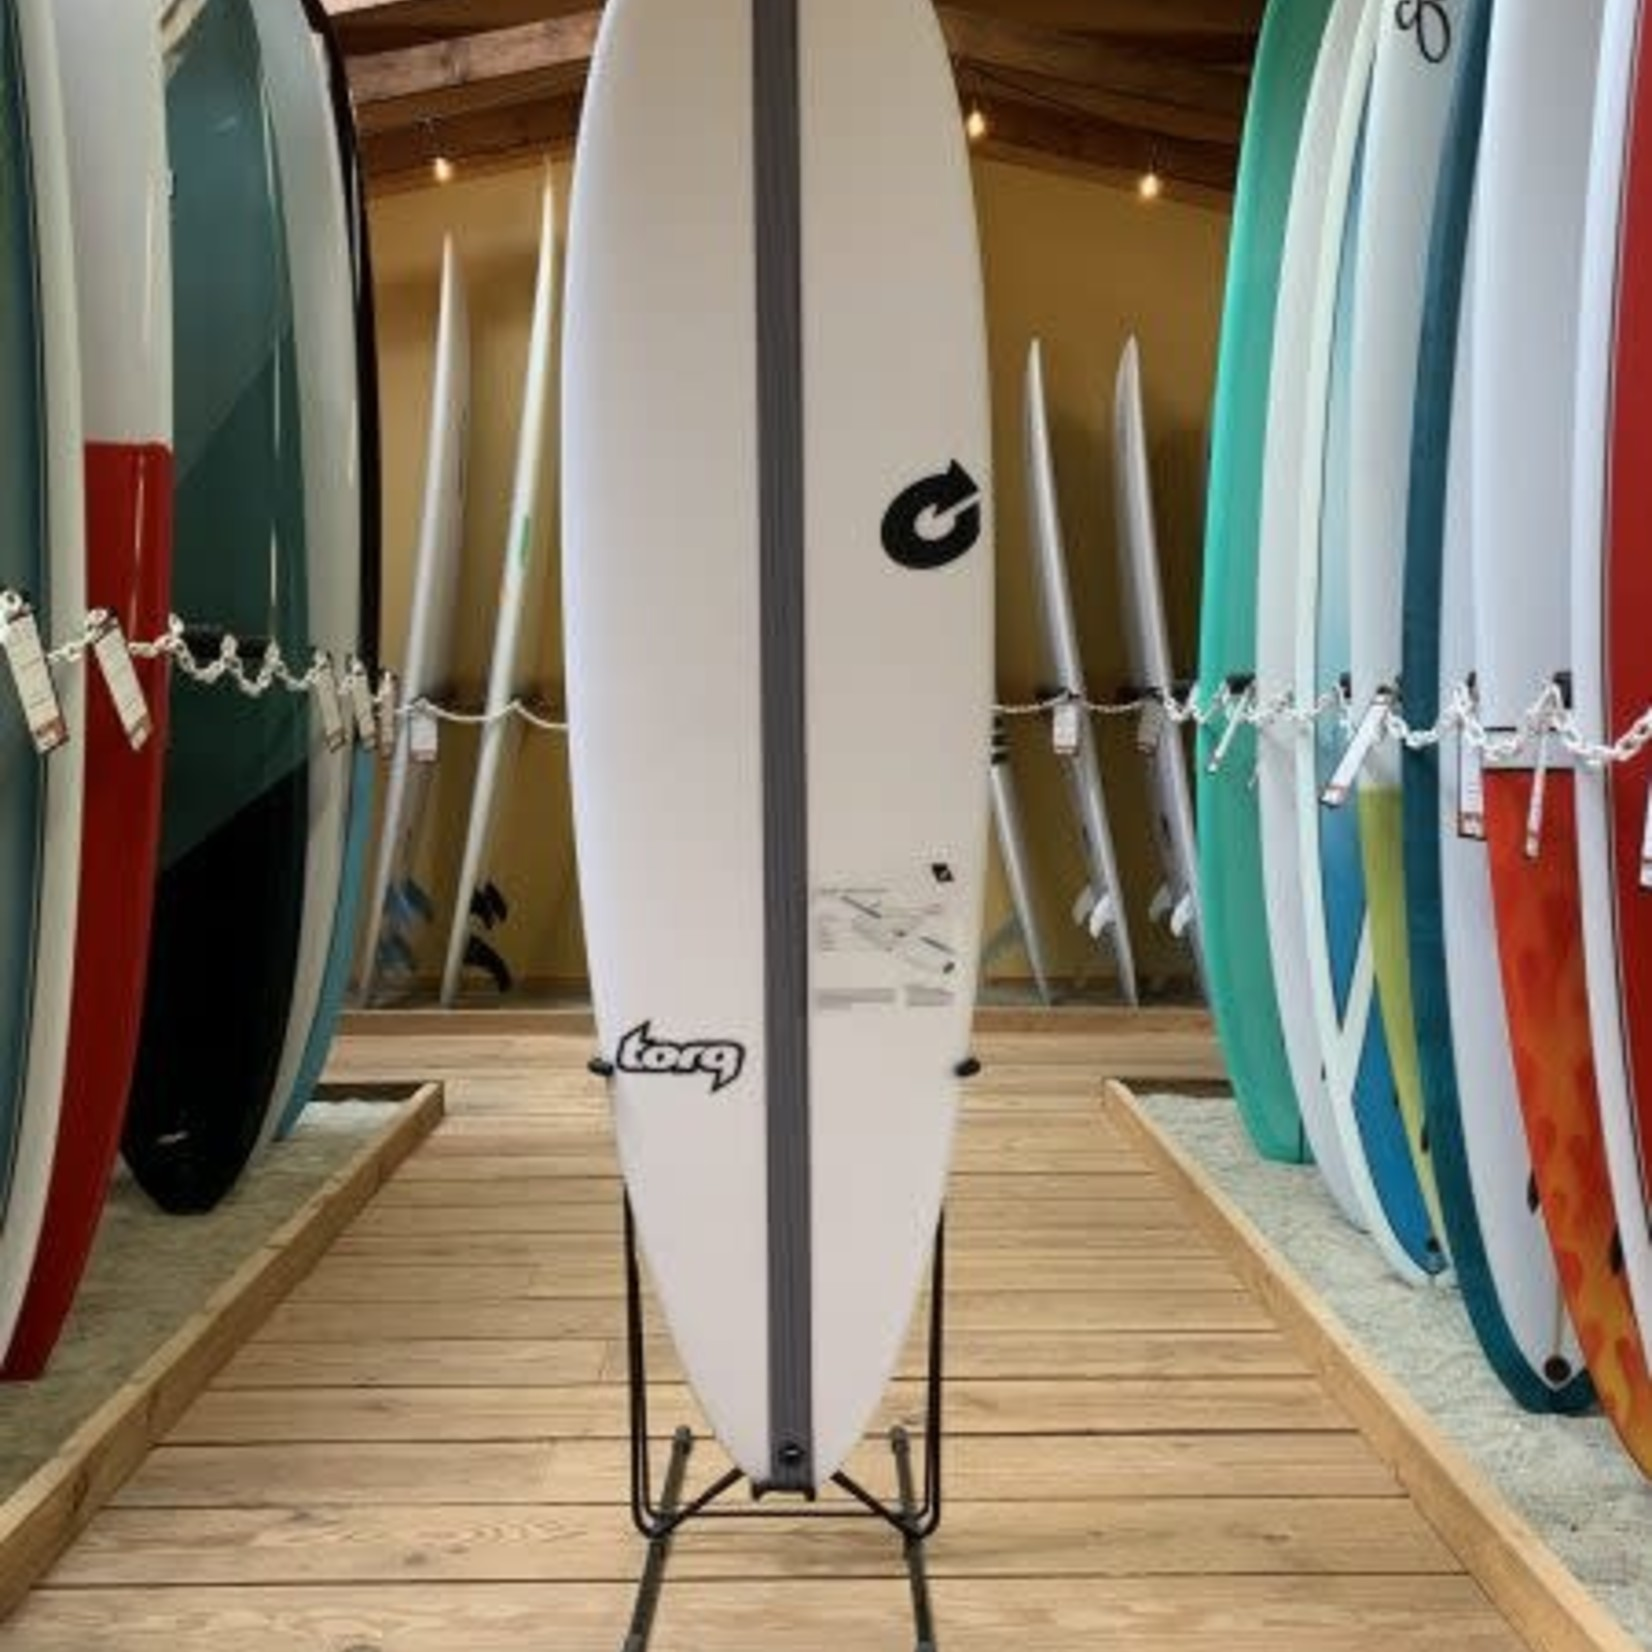 TORQ Surfboards 6'6 Torq TEC M2 white with carbon stringer.